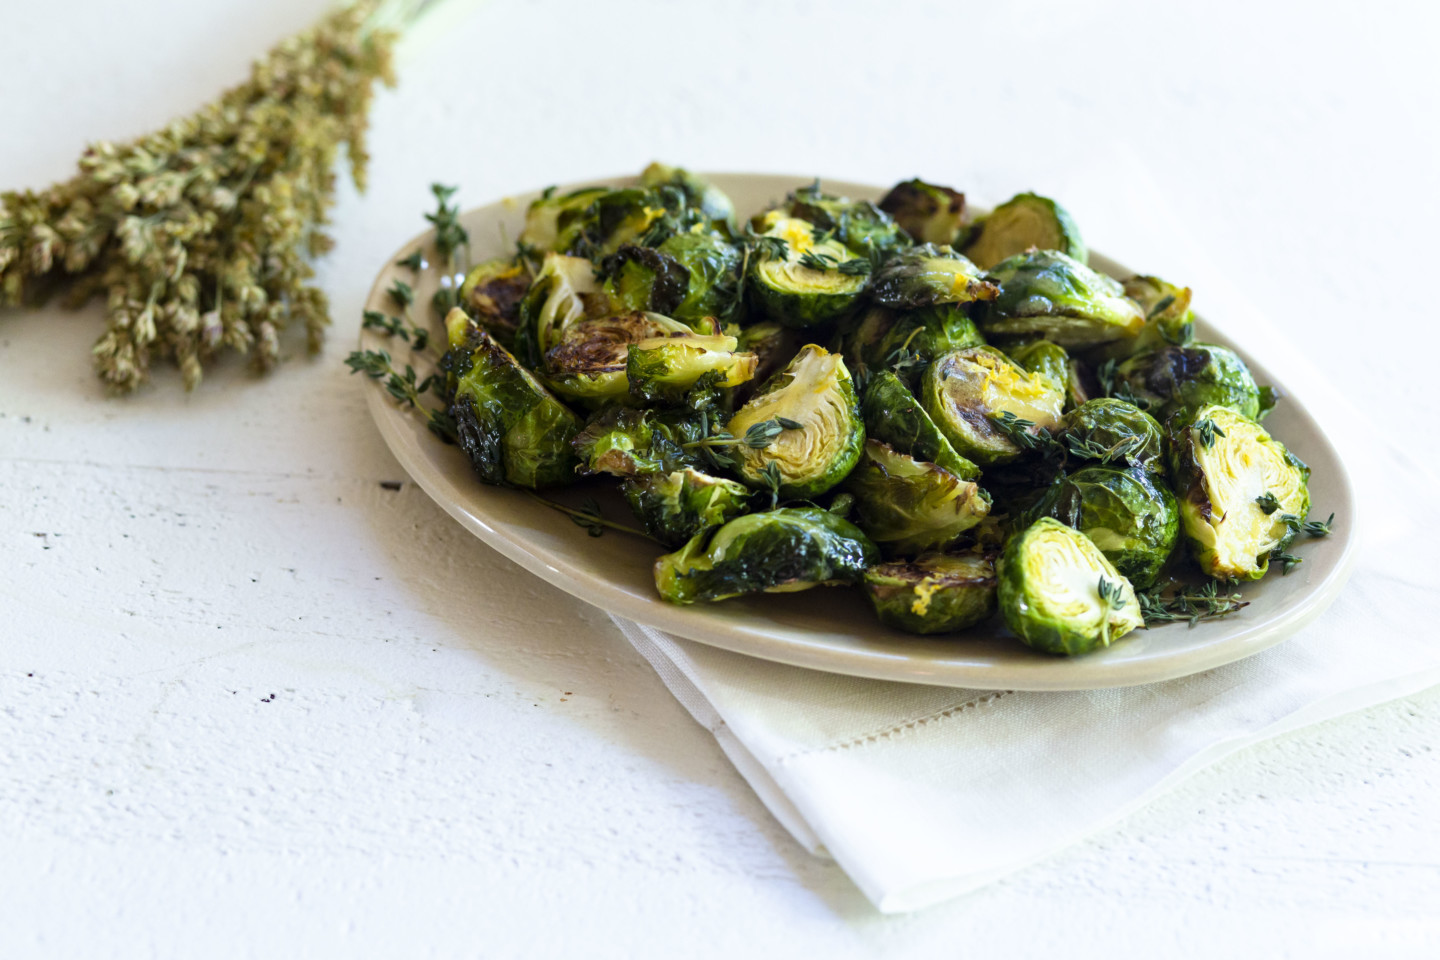 Roasted Brussels Sprouts with Lemon, Fresh Thyme, and California Olive Ranch Limited Reserve Extra Virgin Olive Oil